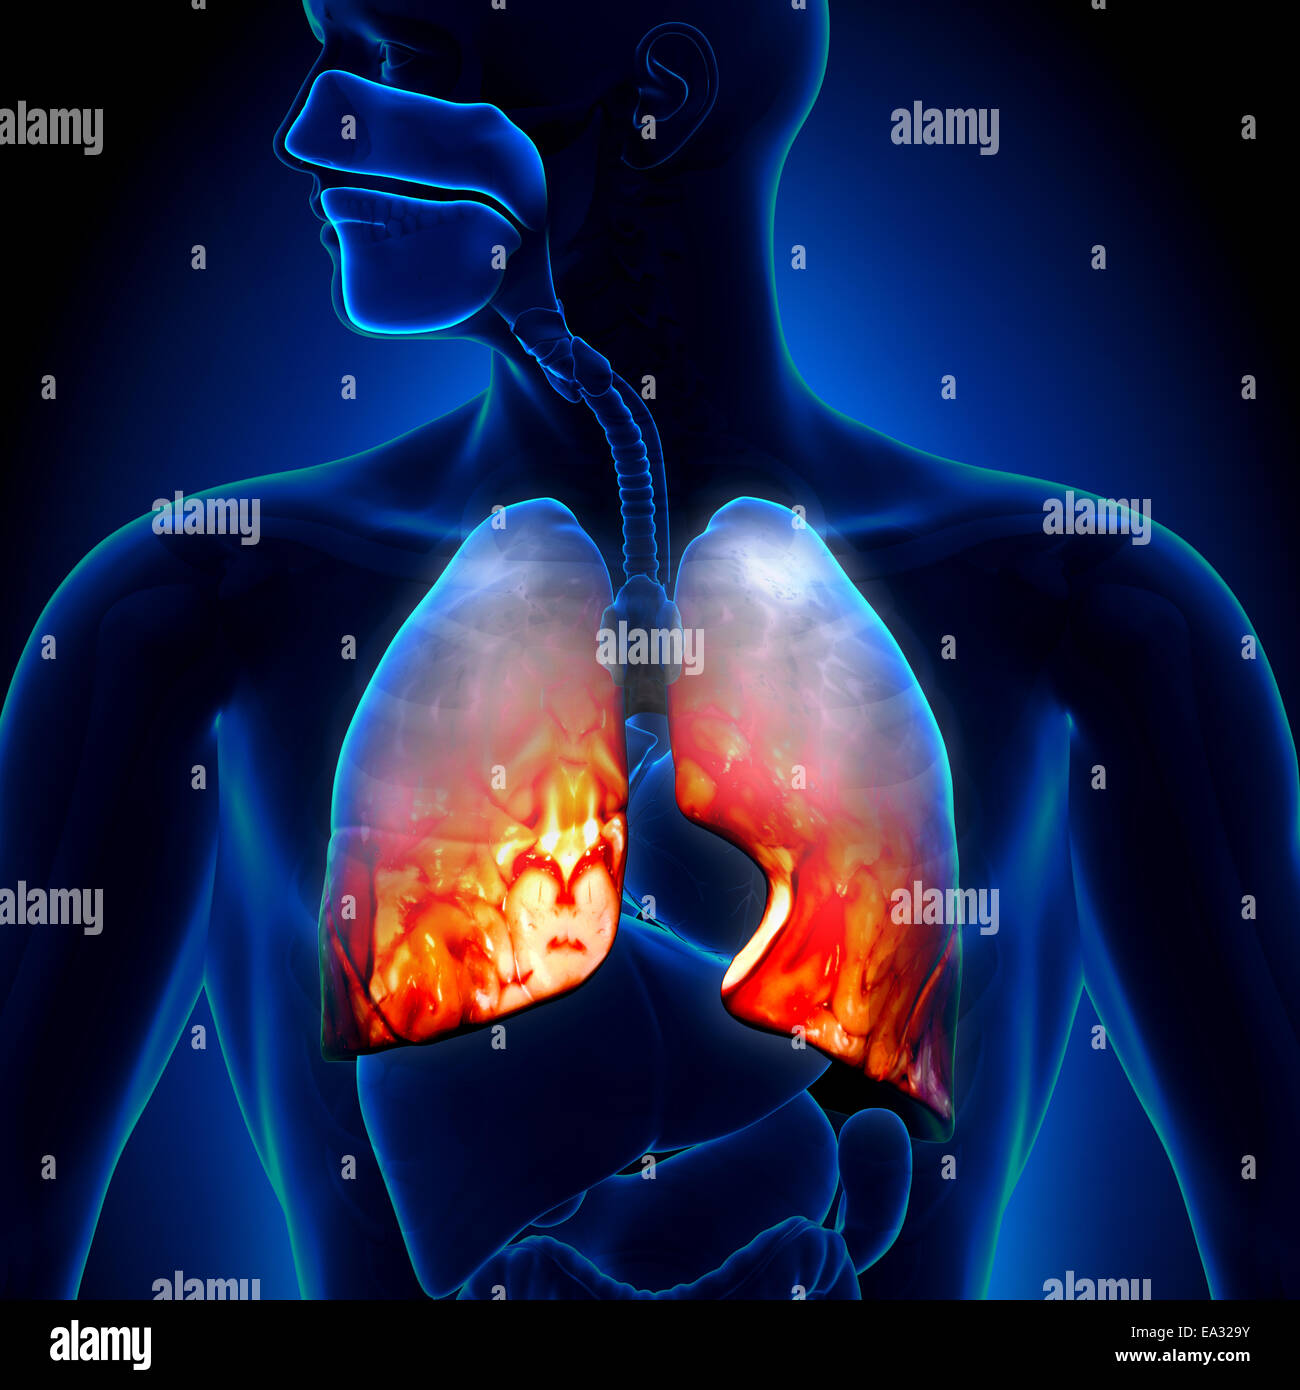 Pneumonia - Lungs Inflammatory Condition - Stock Image